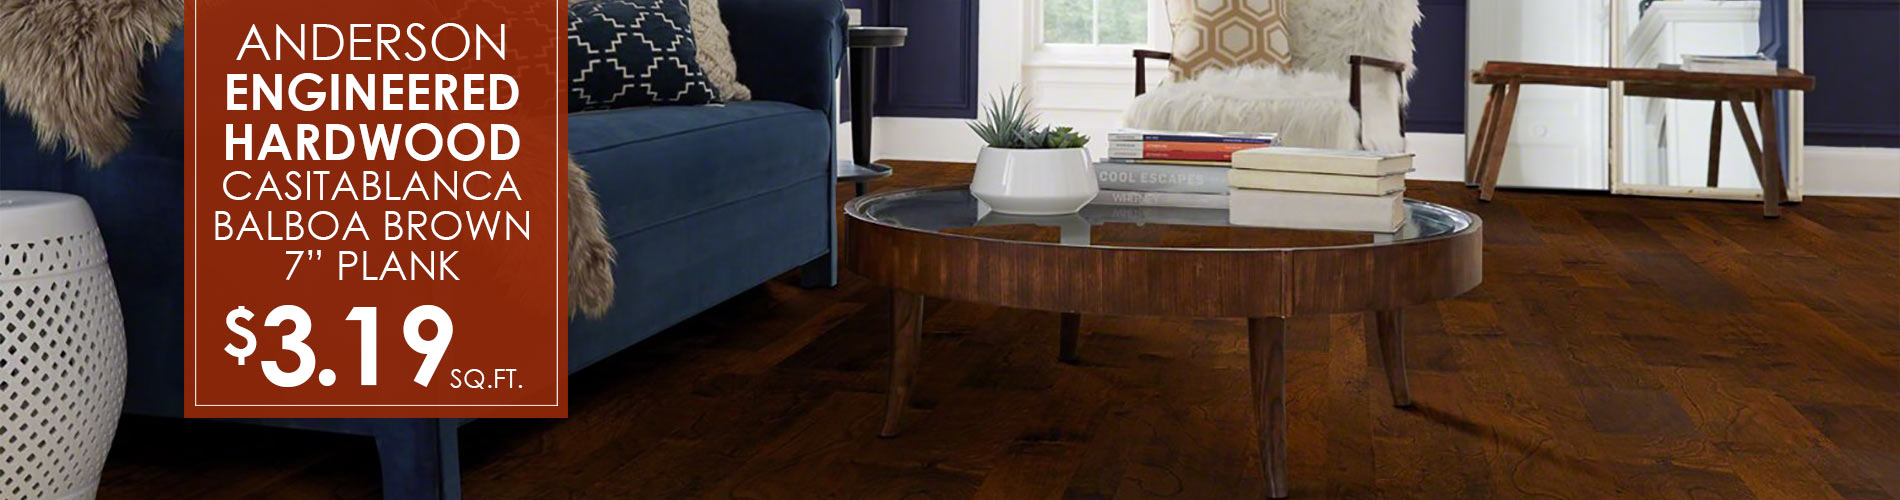 "Anderson engineered hardwood Casitablanca Balboa Brown 7"" plank $3.19 sq.ft."